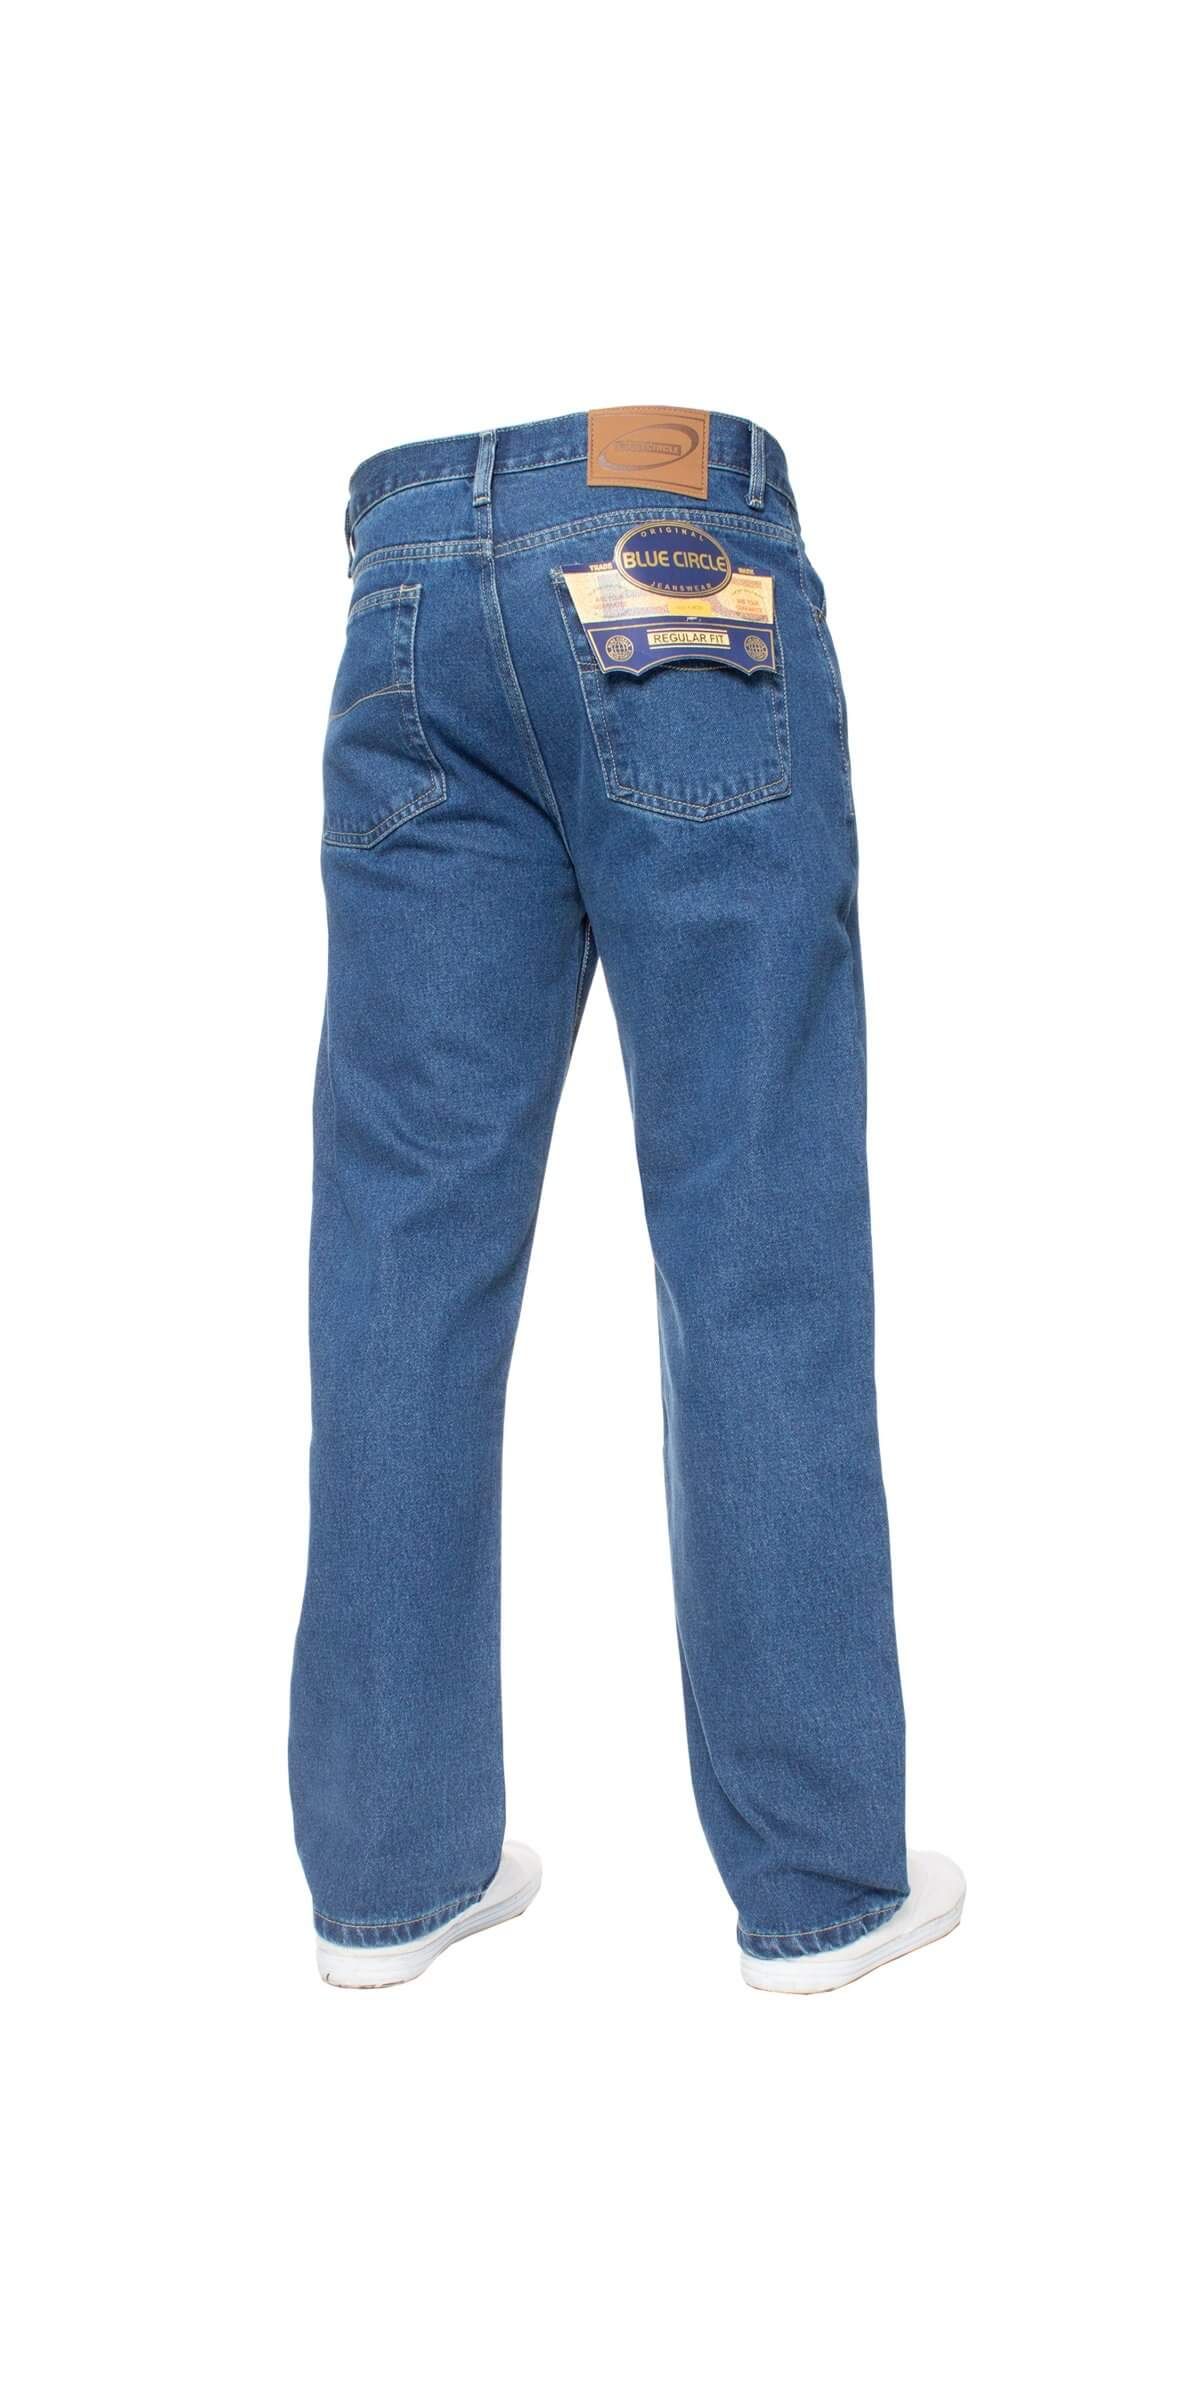 Mens Stone Wash Classic Denim Jeans BCB1 | Blue Circle Designer Menswear